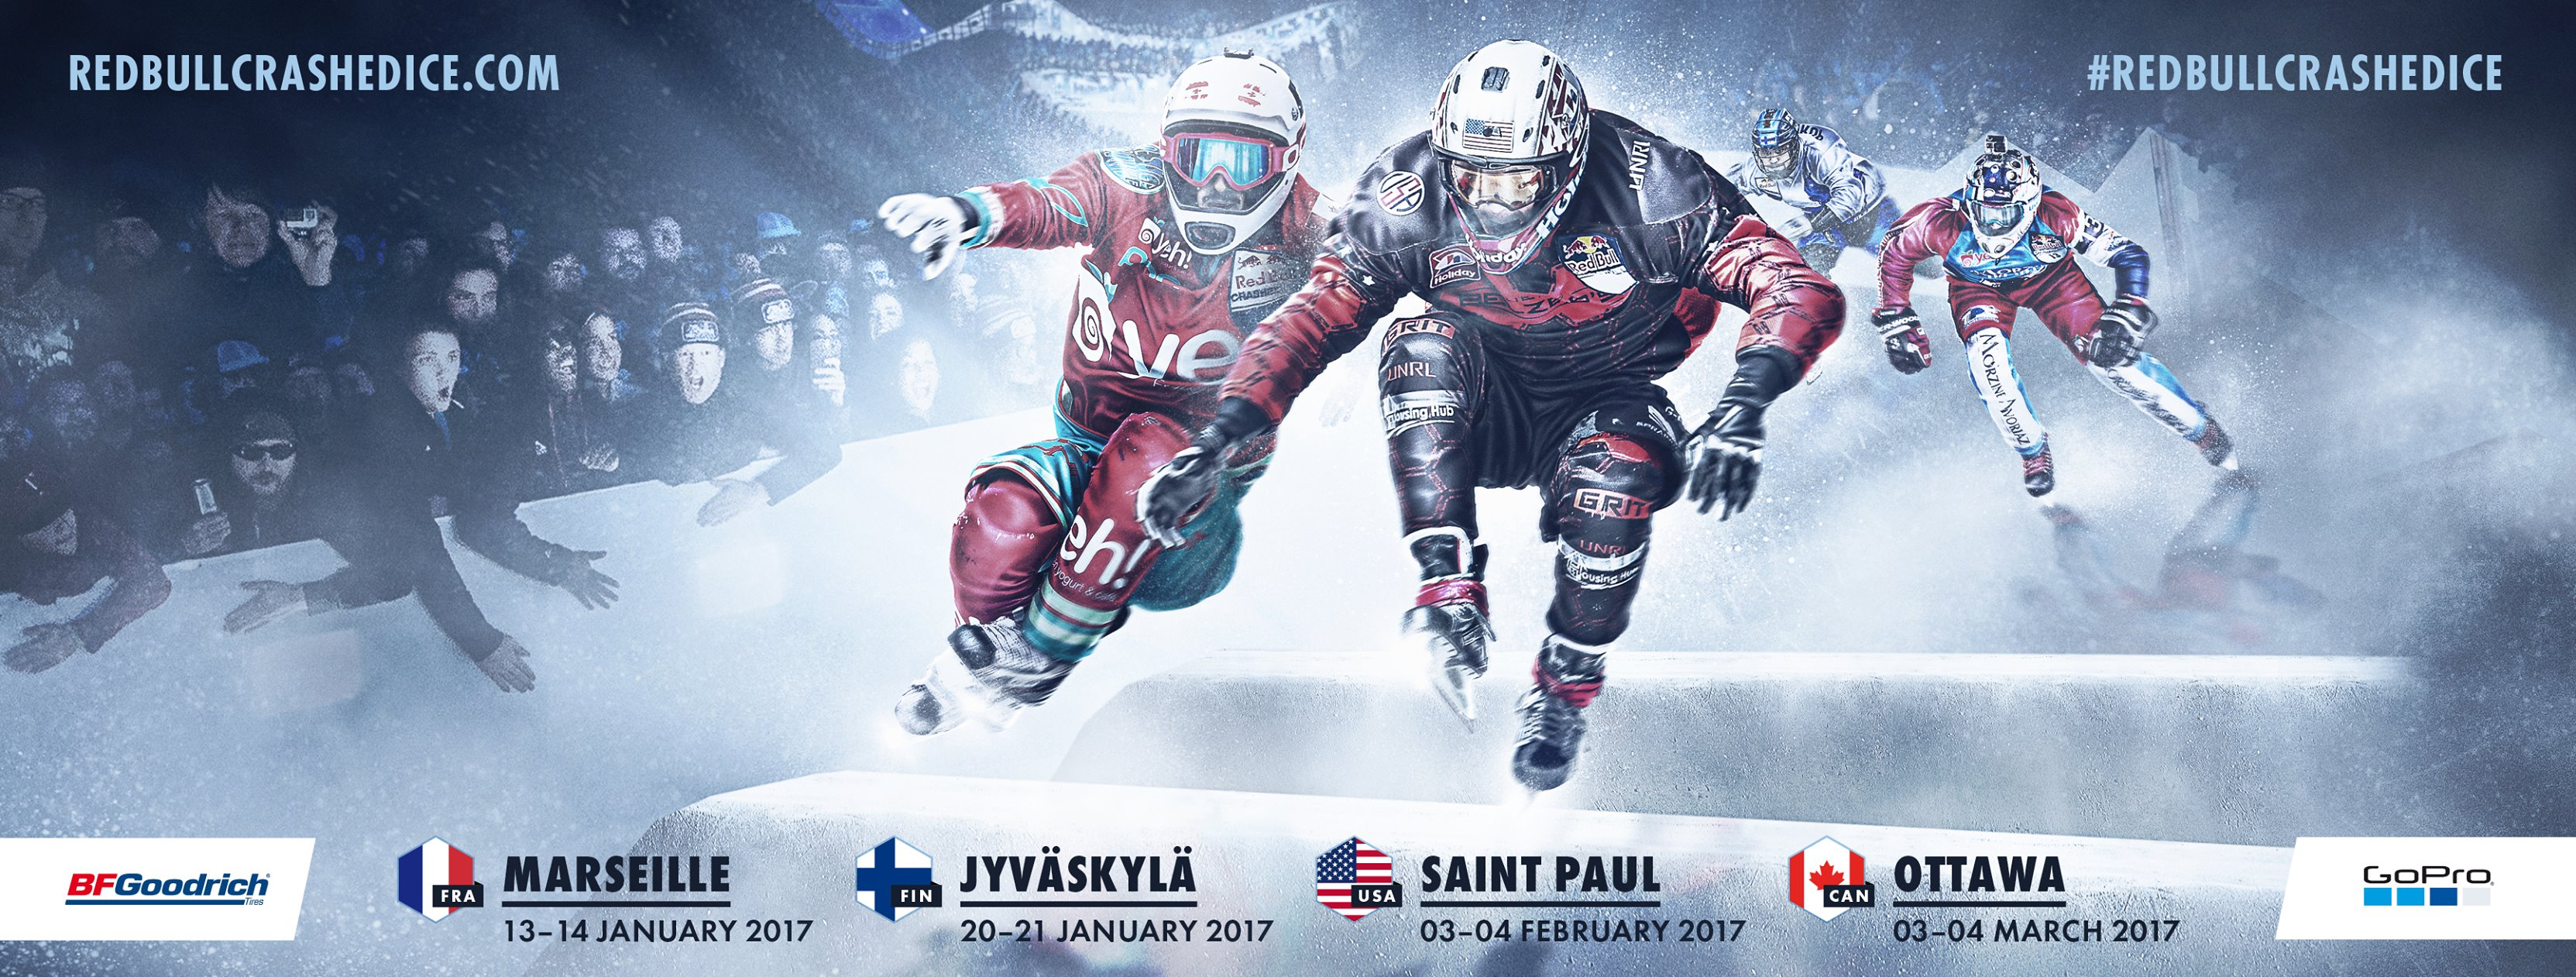 red-bull-crashed-ice